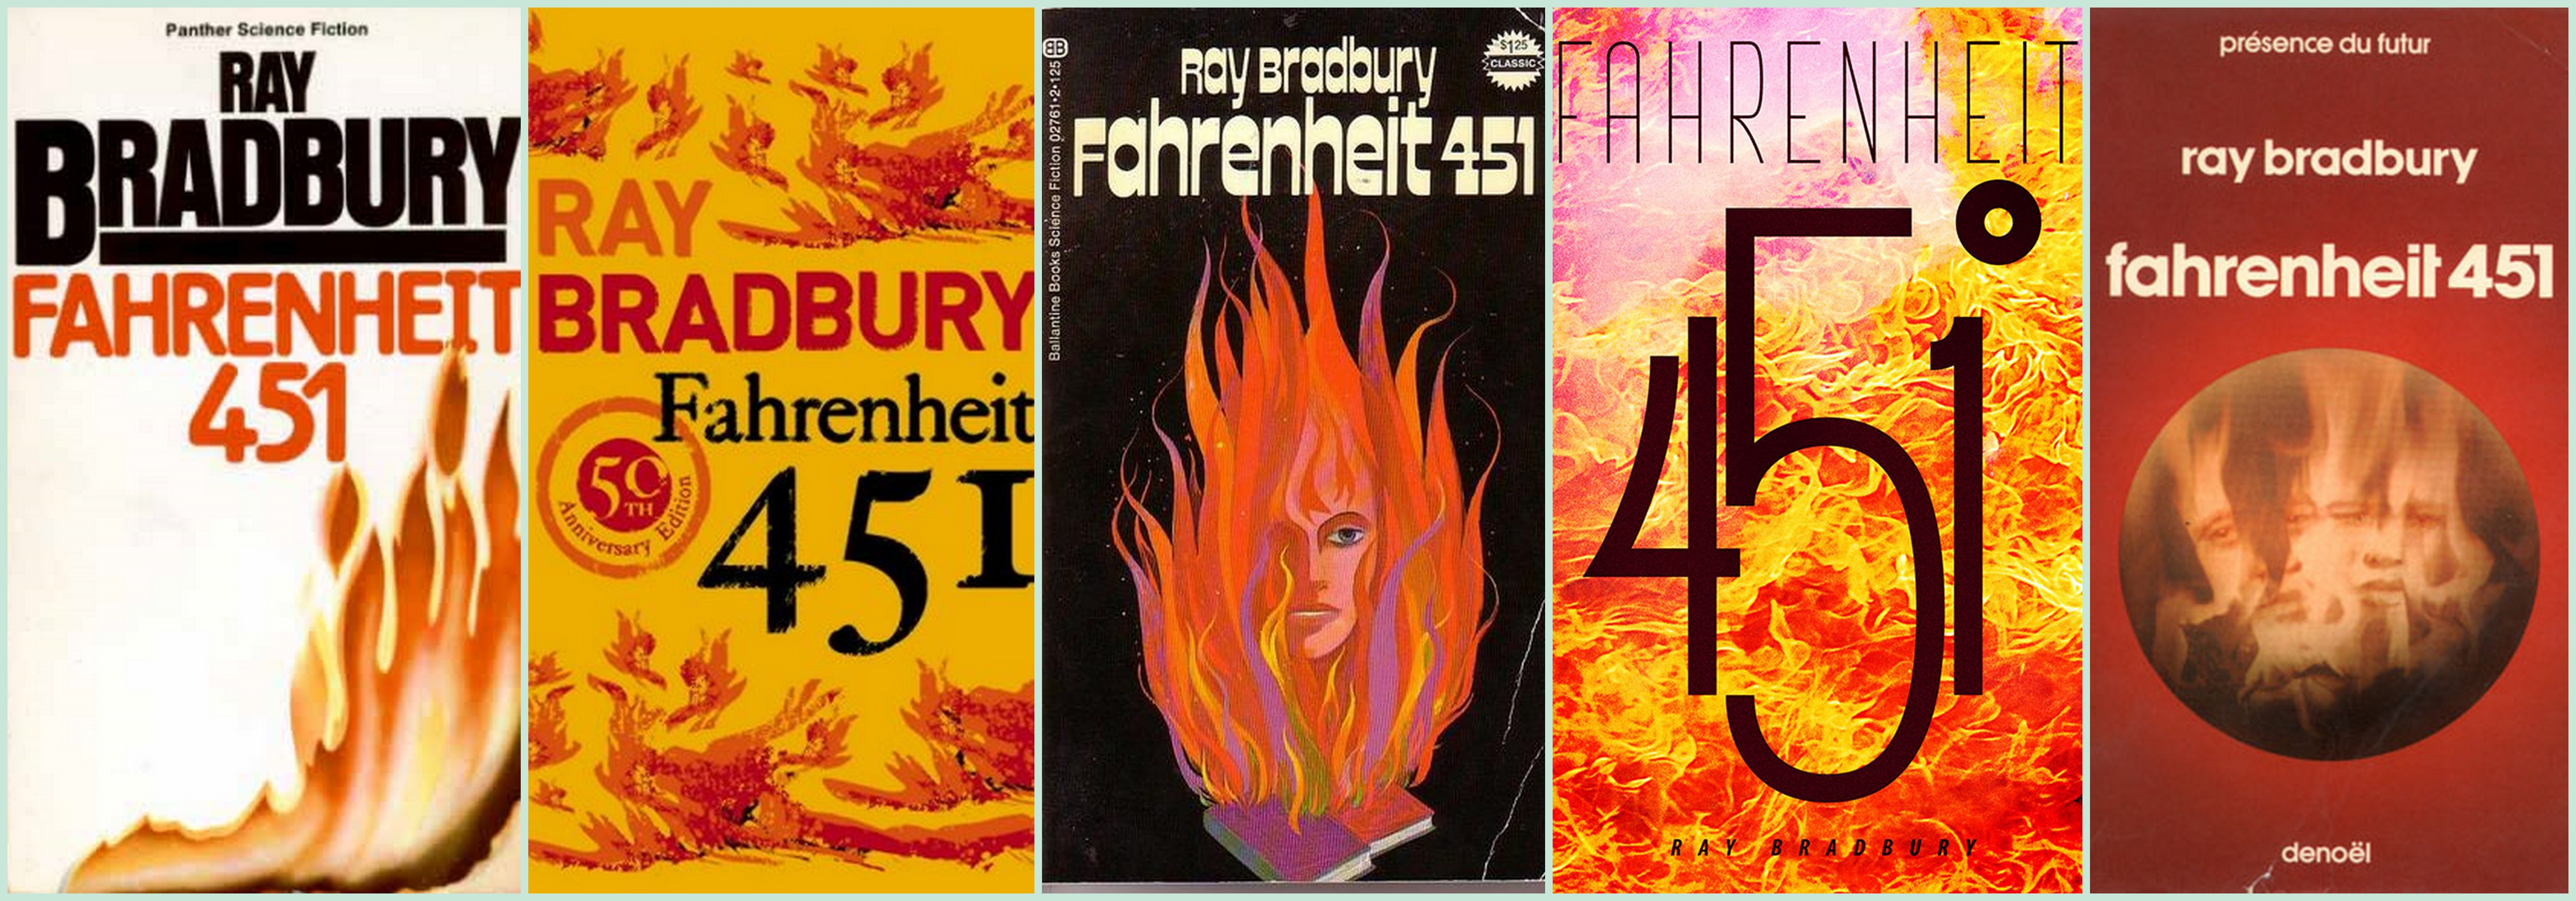 the influence of censorship represented in the book fahrenheit 451 by ray bradbury Bradbury, best known for his 1953 novel fahrenheit 451, used his imagination to take a hard look at a world locked in a growing love affair with technology his stories examined what humanity gained — and lost — by being plugged-in.